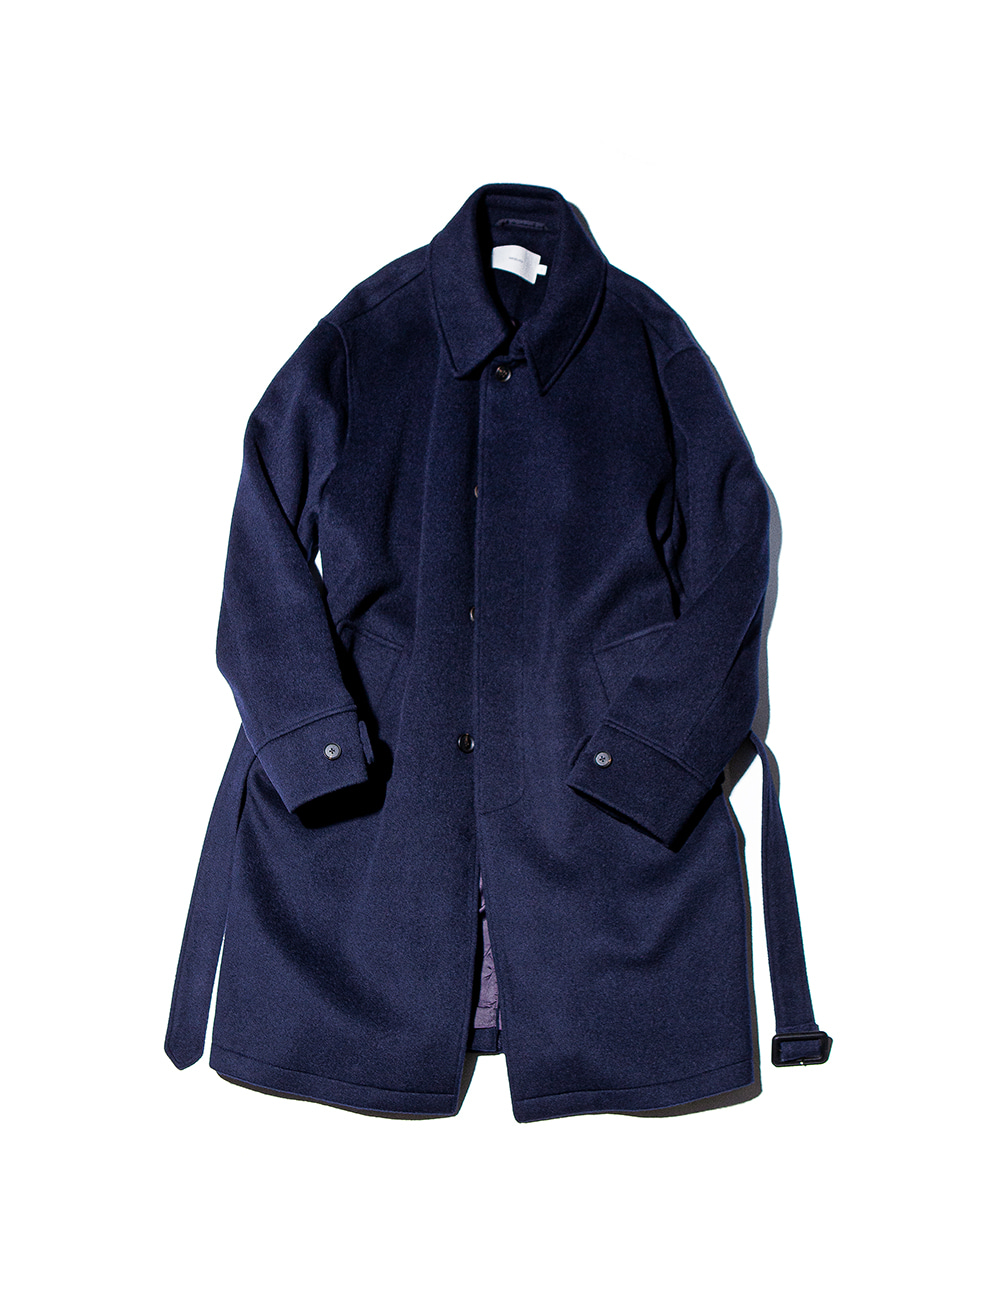 [Ourselves] SOFT WOOL BELTED MAC COAT (Midnight navy)